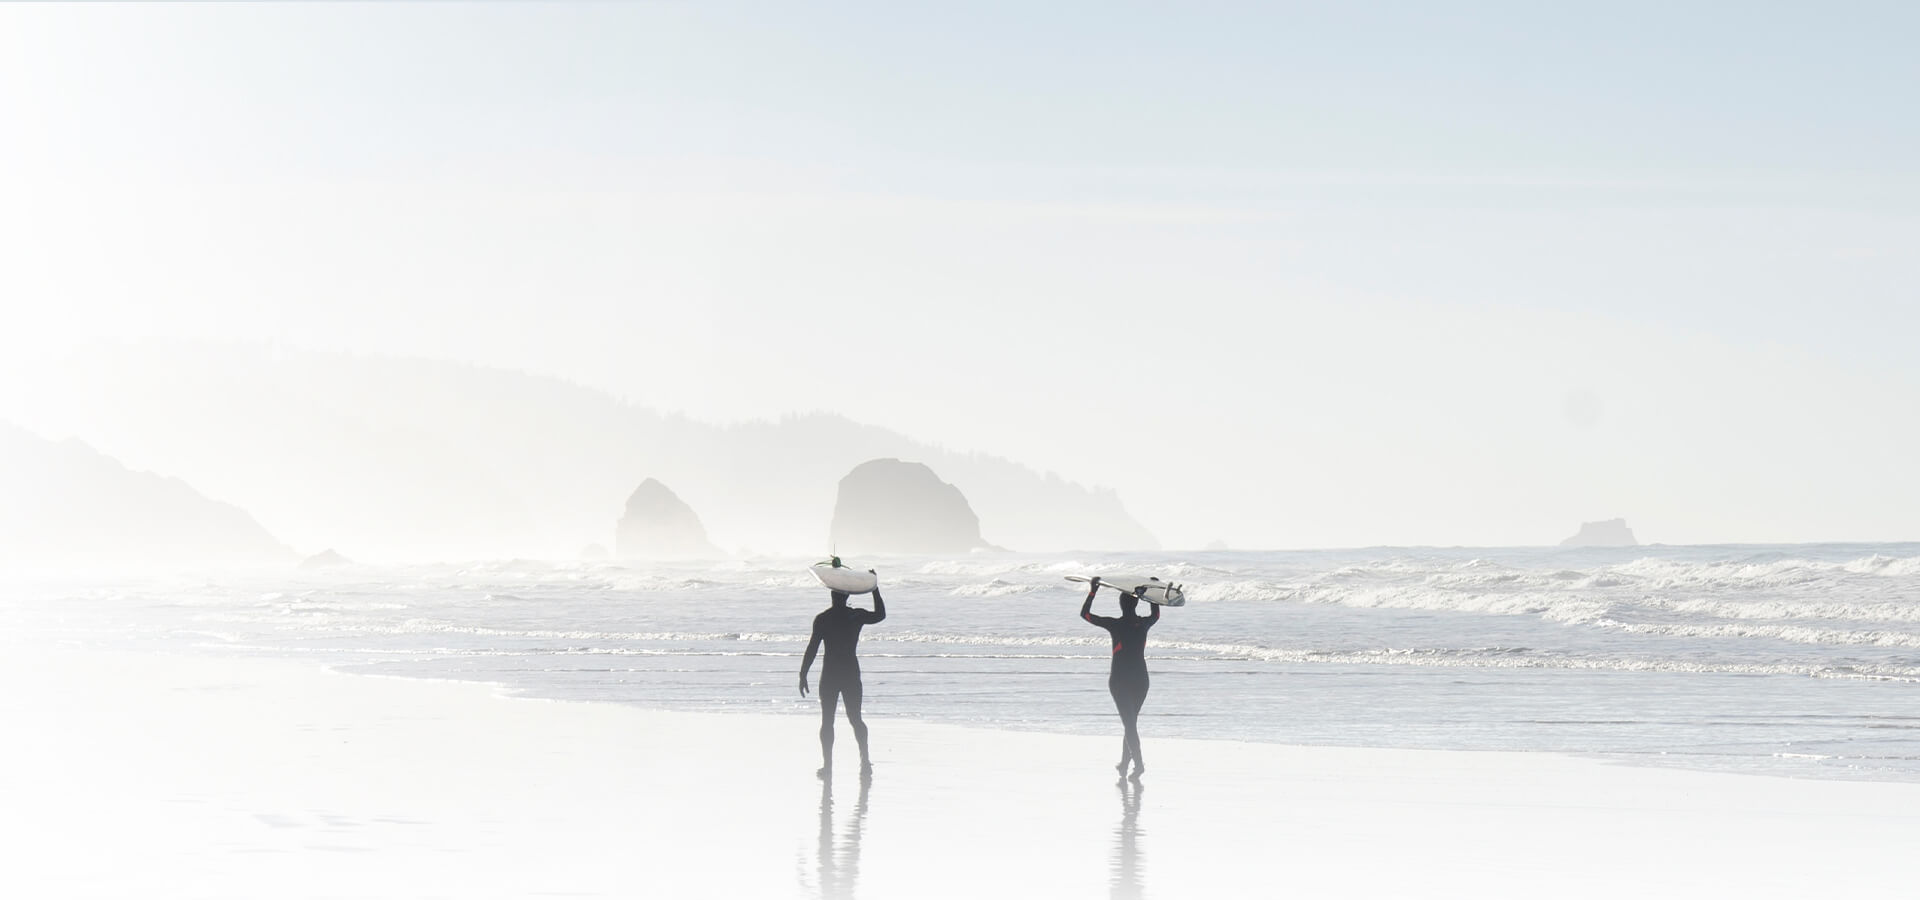 coupe walking on beach with surfboards